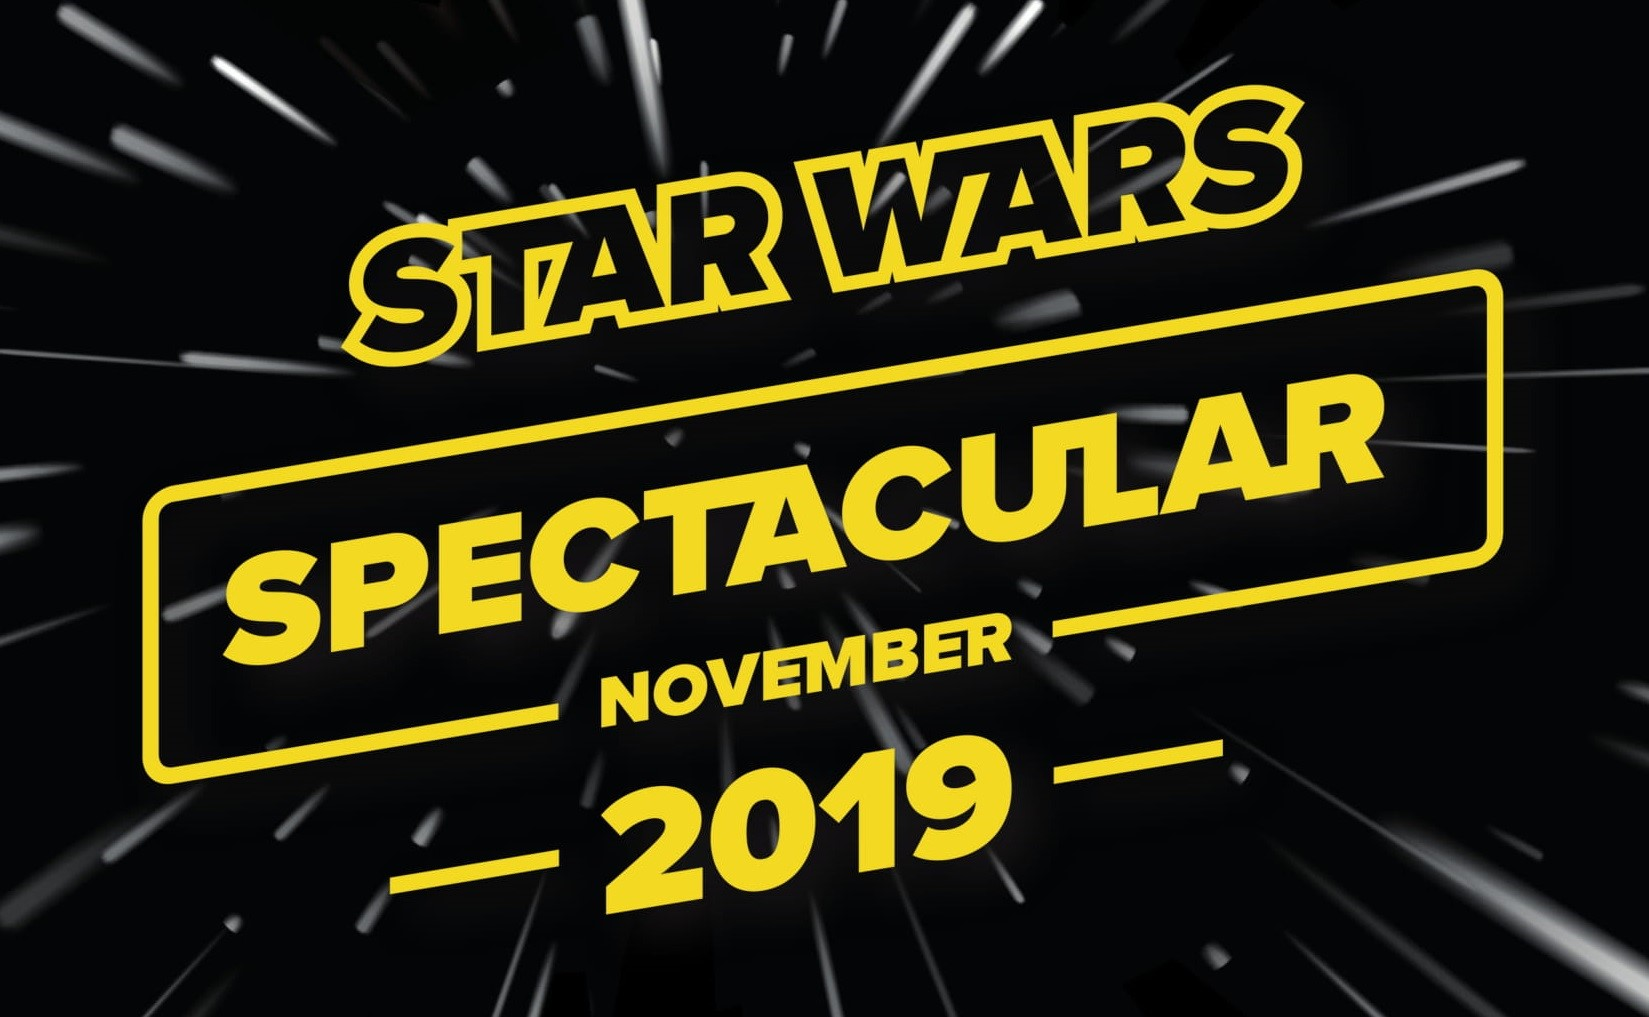 Star Wars Spectacular